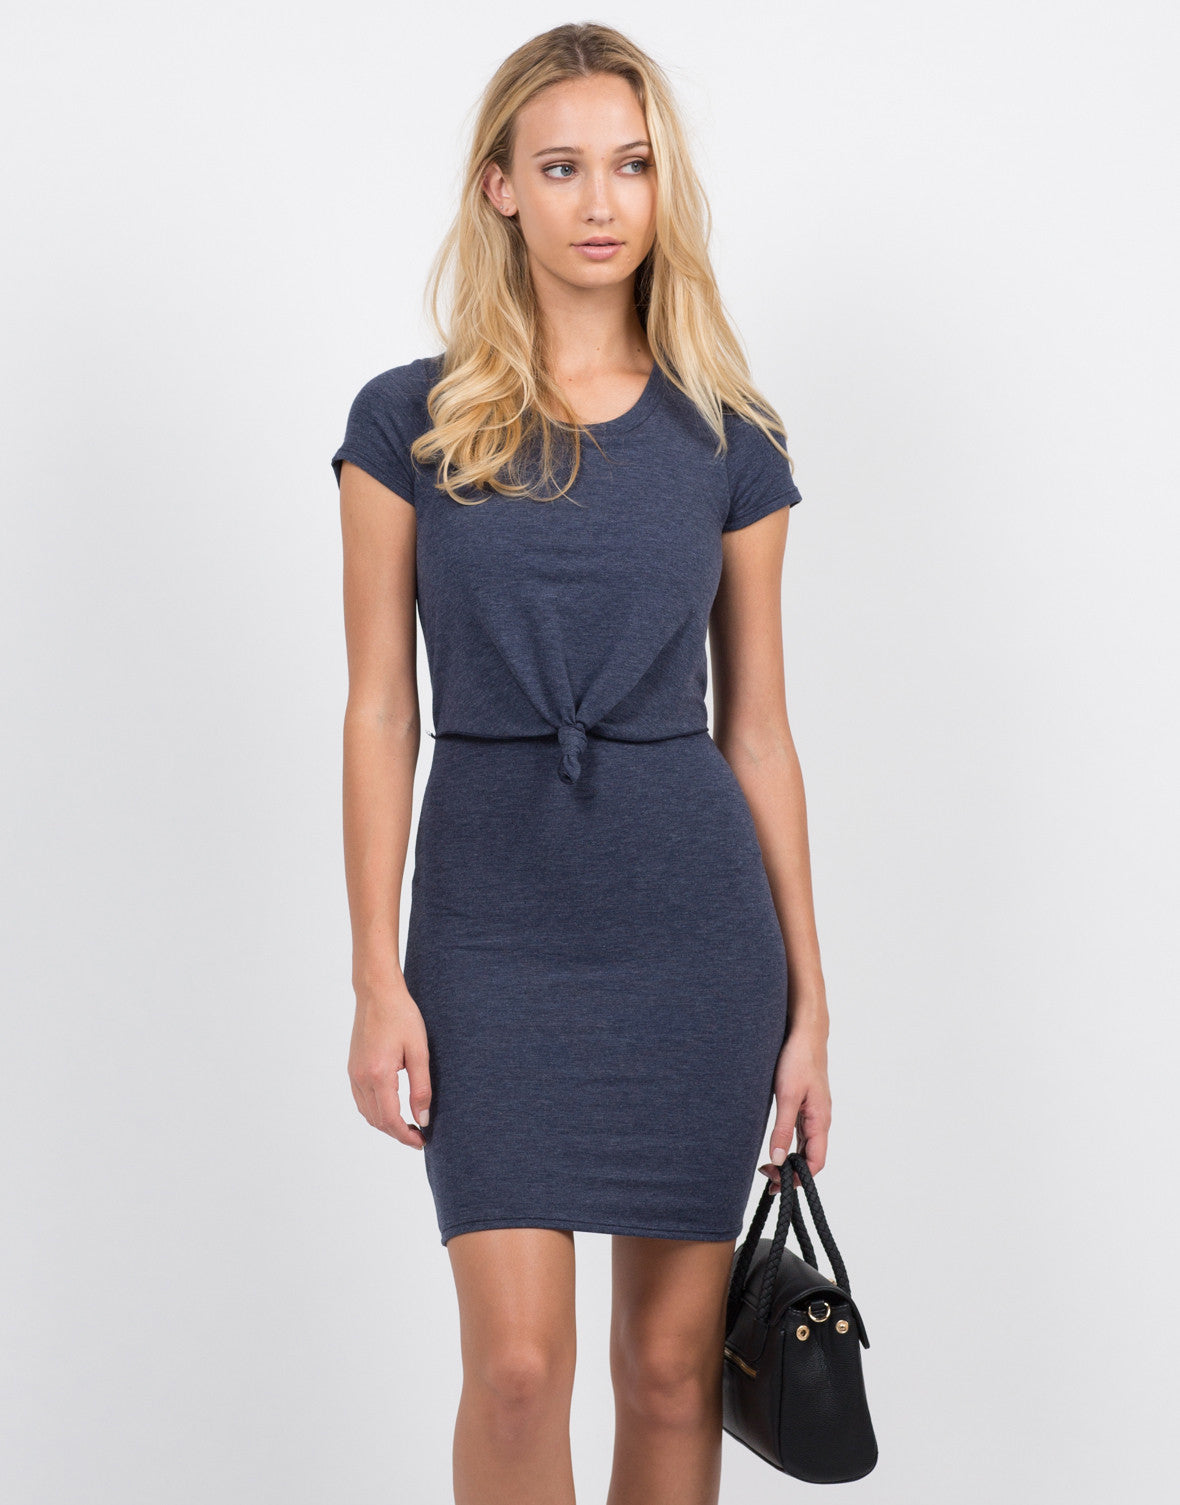 Front View of Knot It Dress